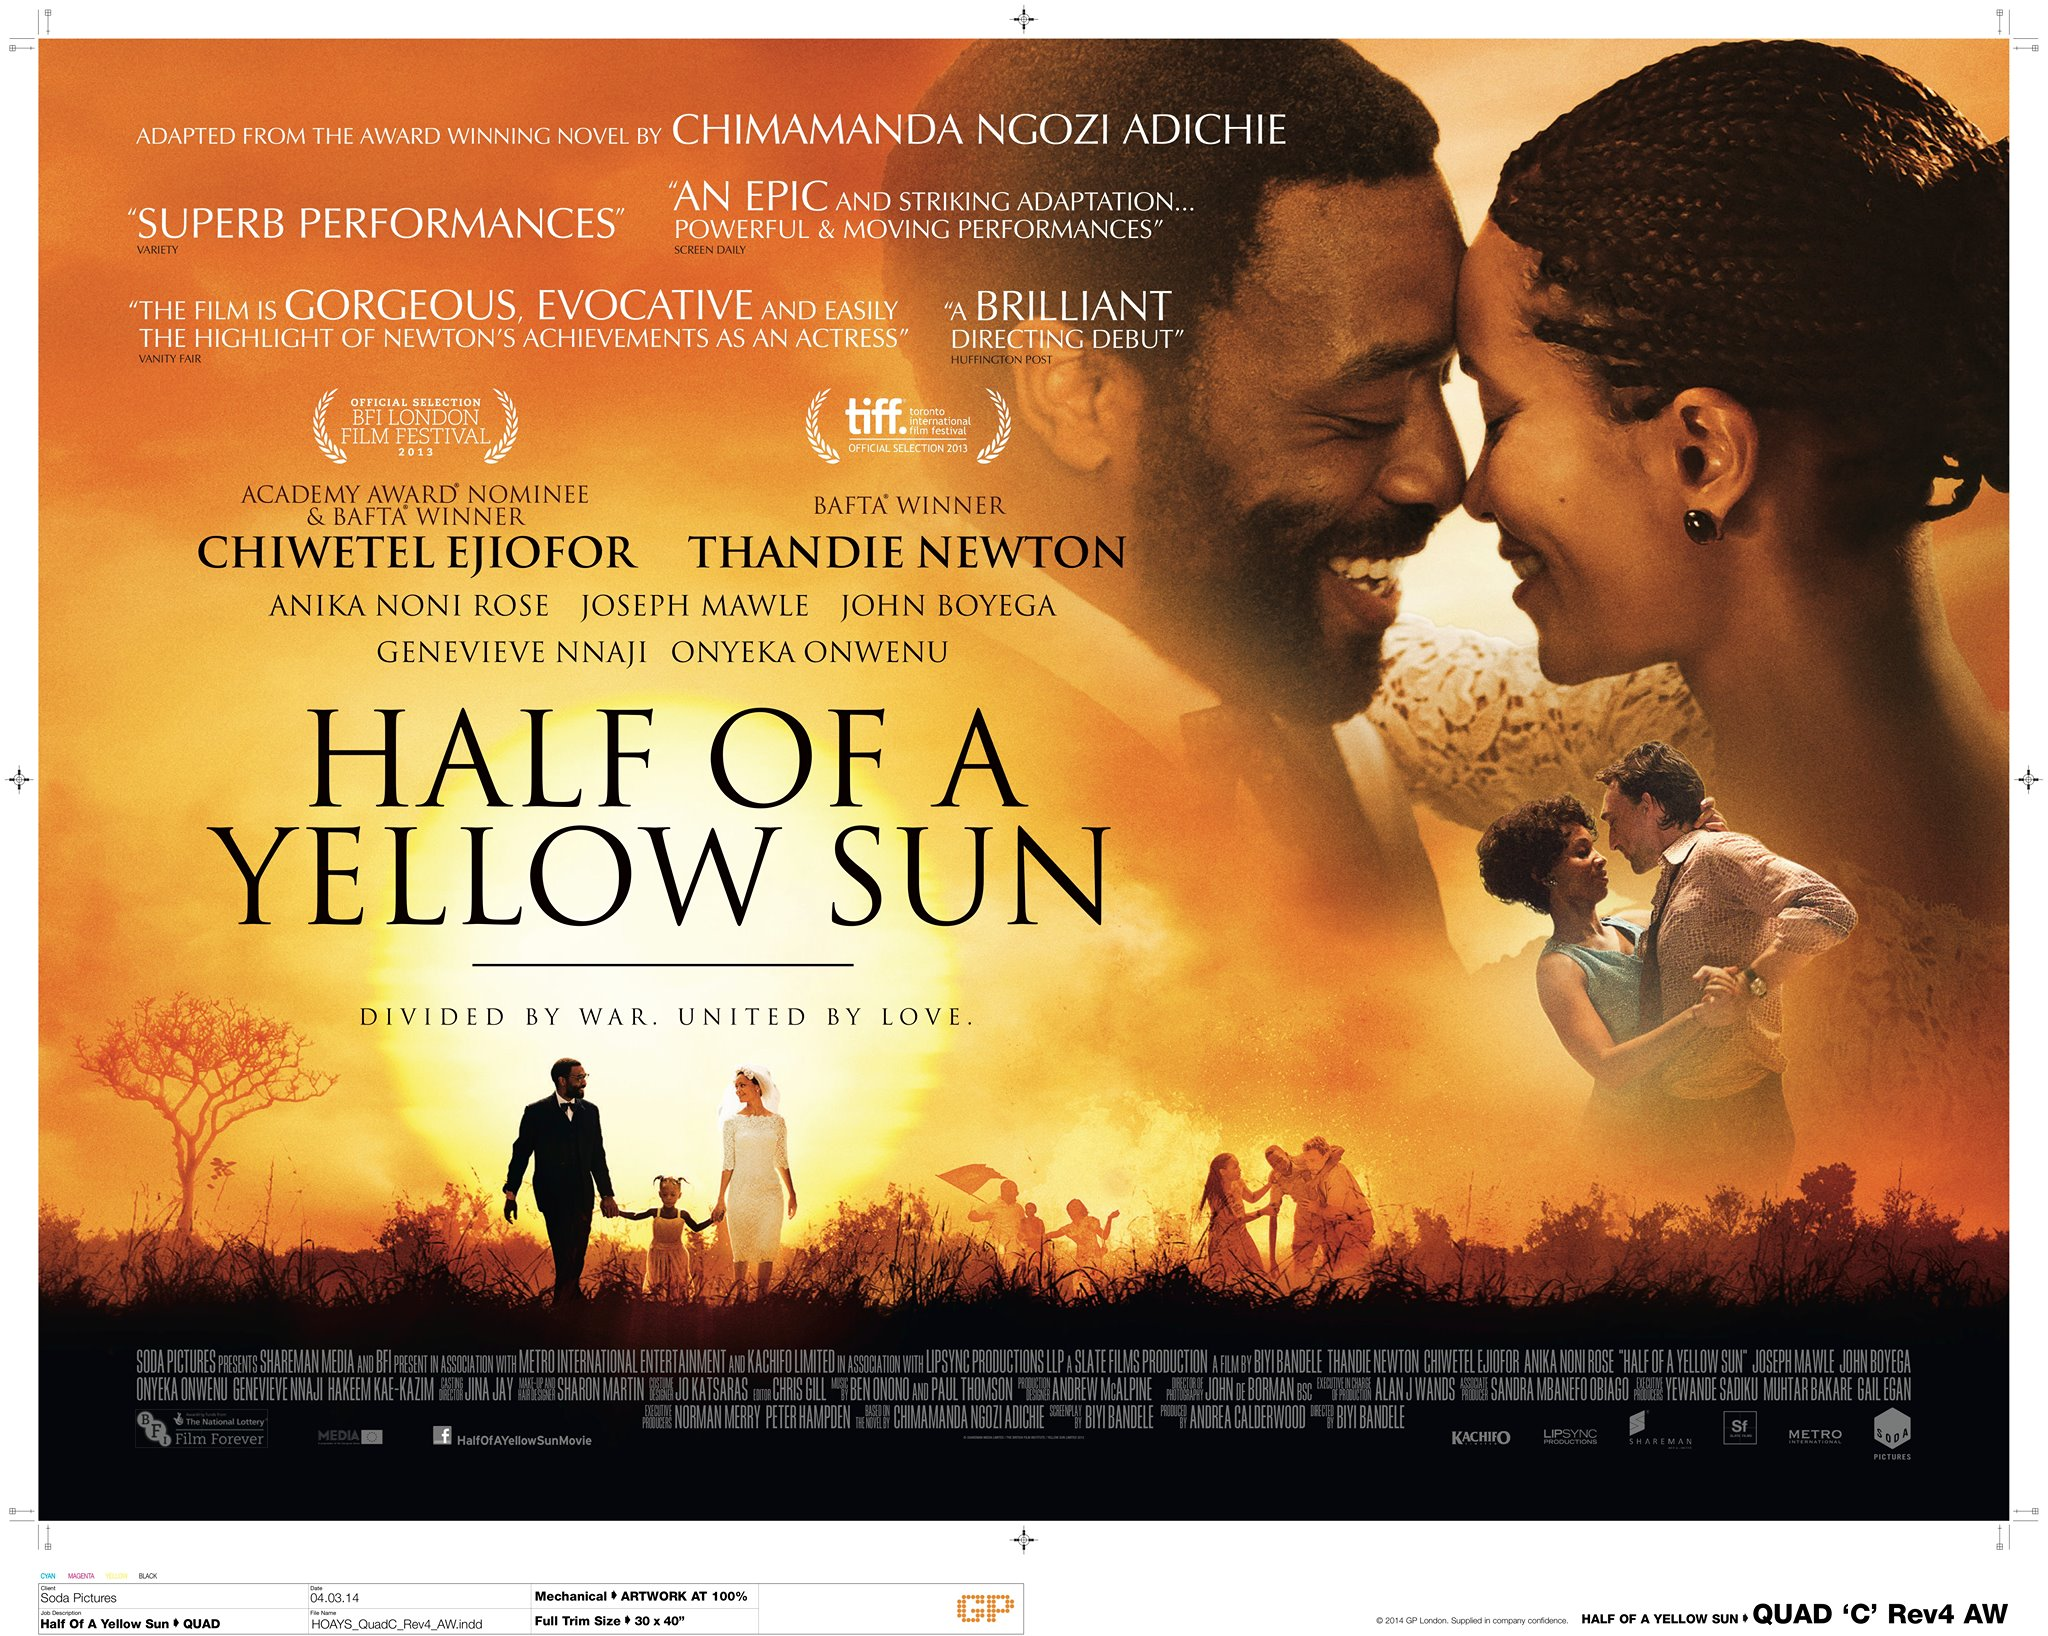 Half of a Yellow Sun wins the Golden Dhow award